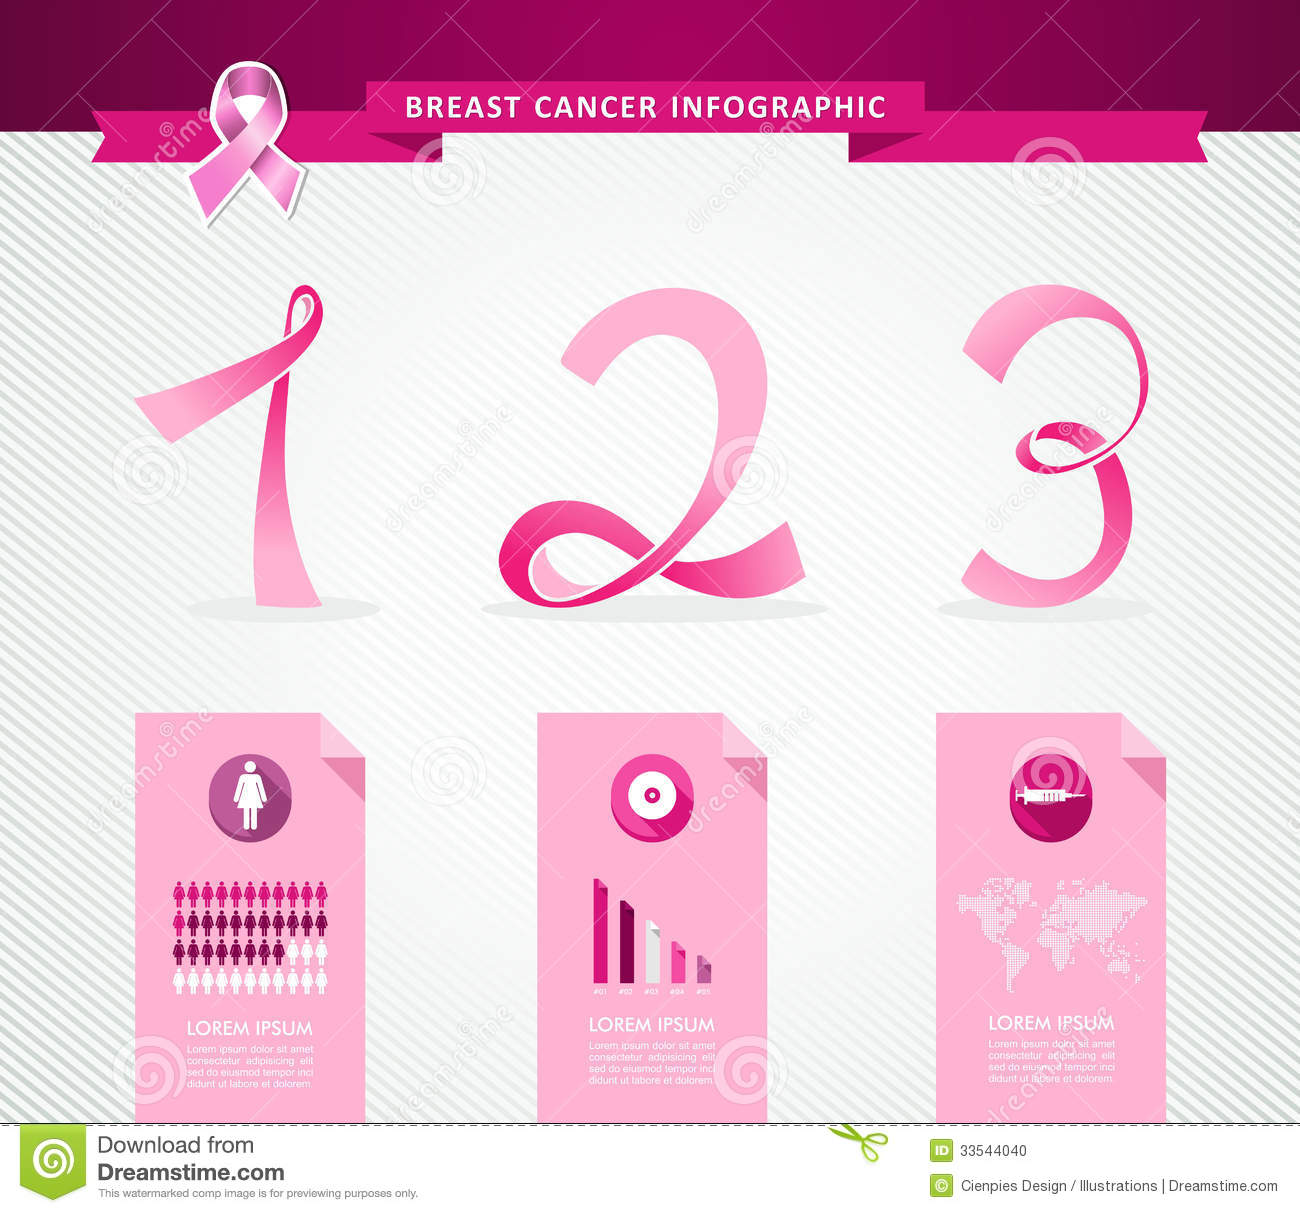 Cancer how breast dangerous is